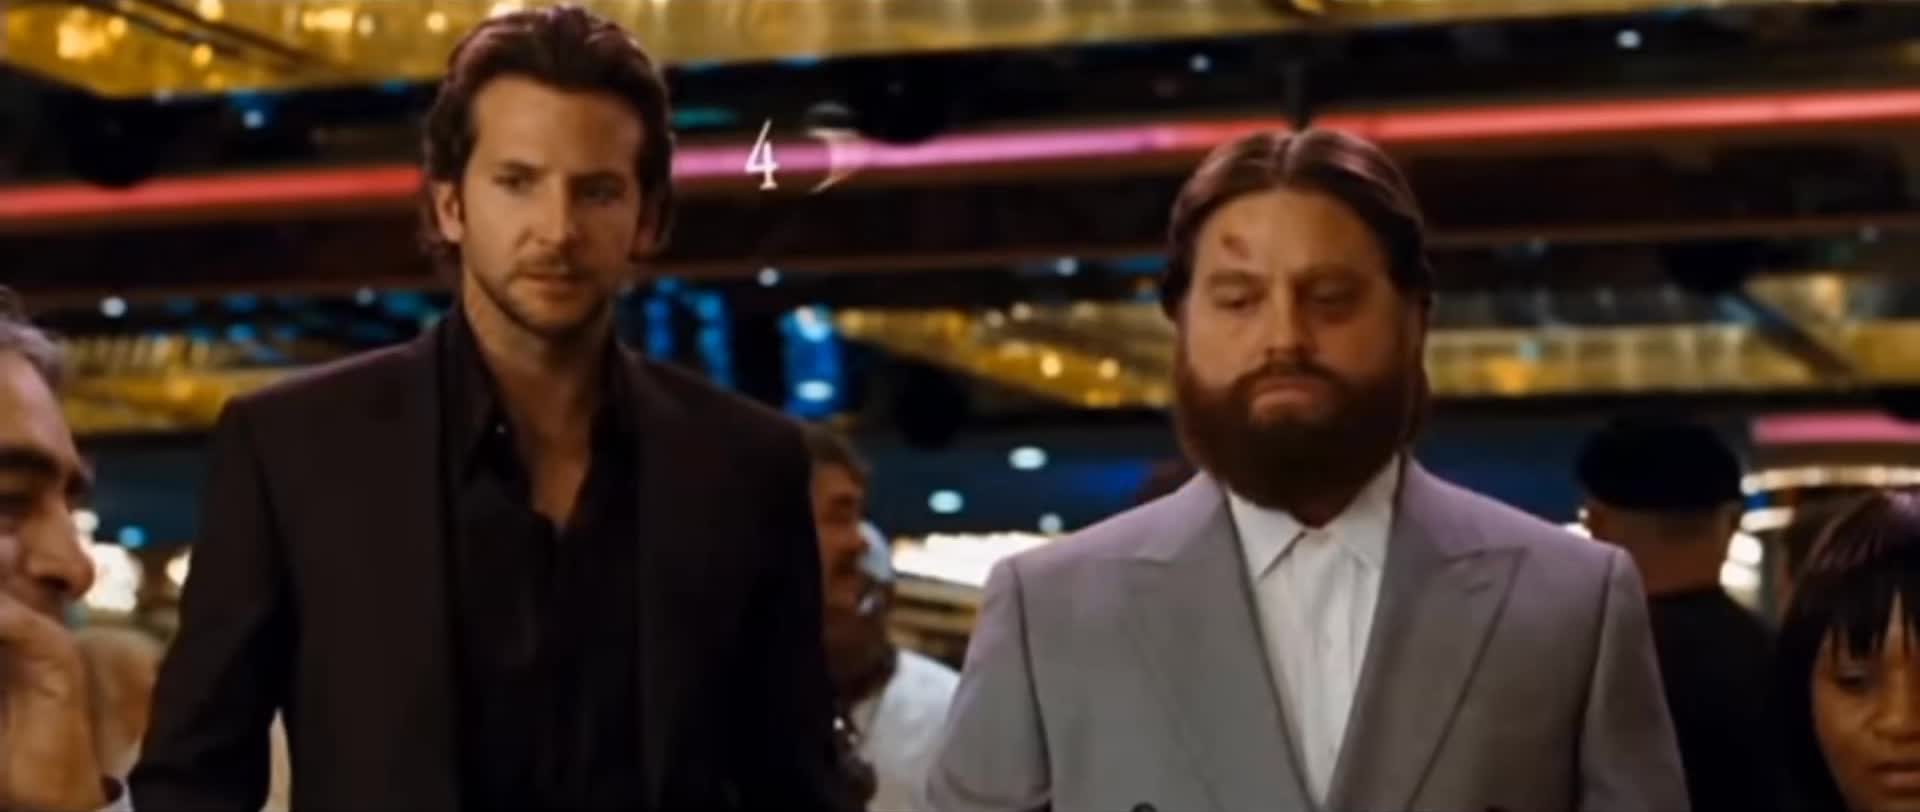 The Hangover Part II: New Scenes Revealed In Three TV